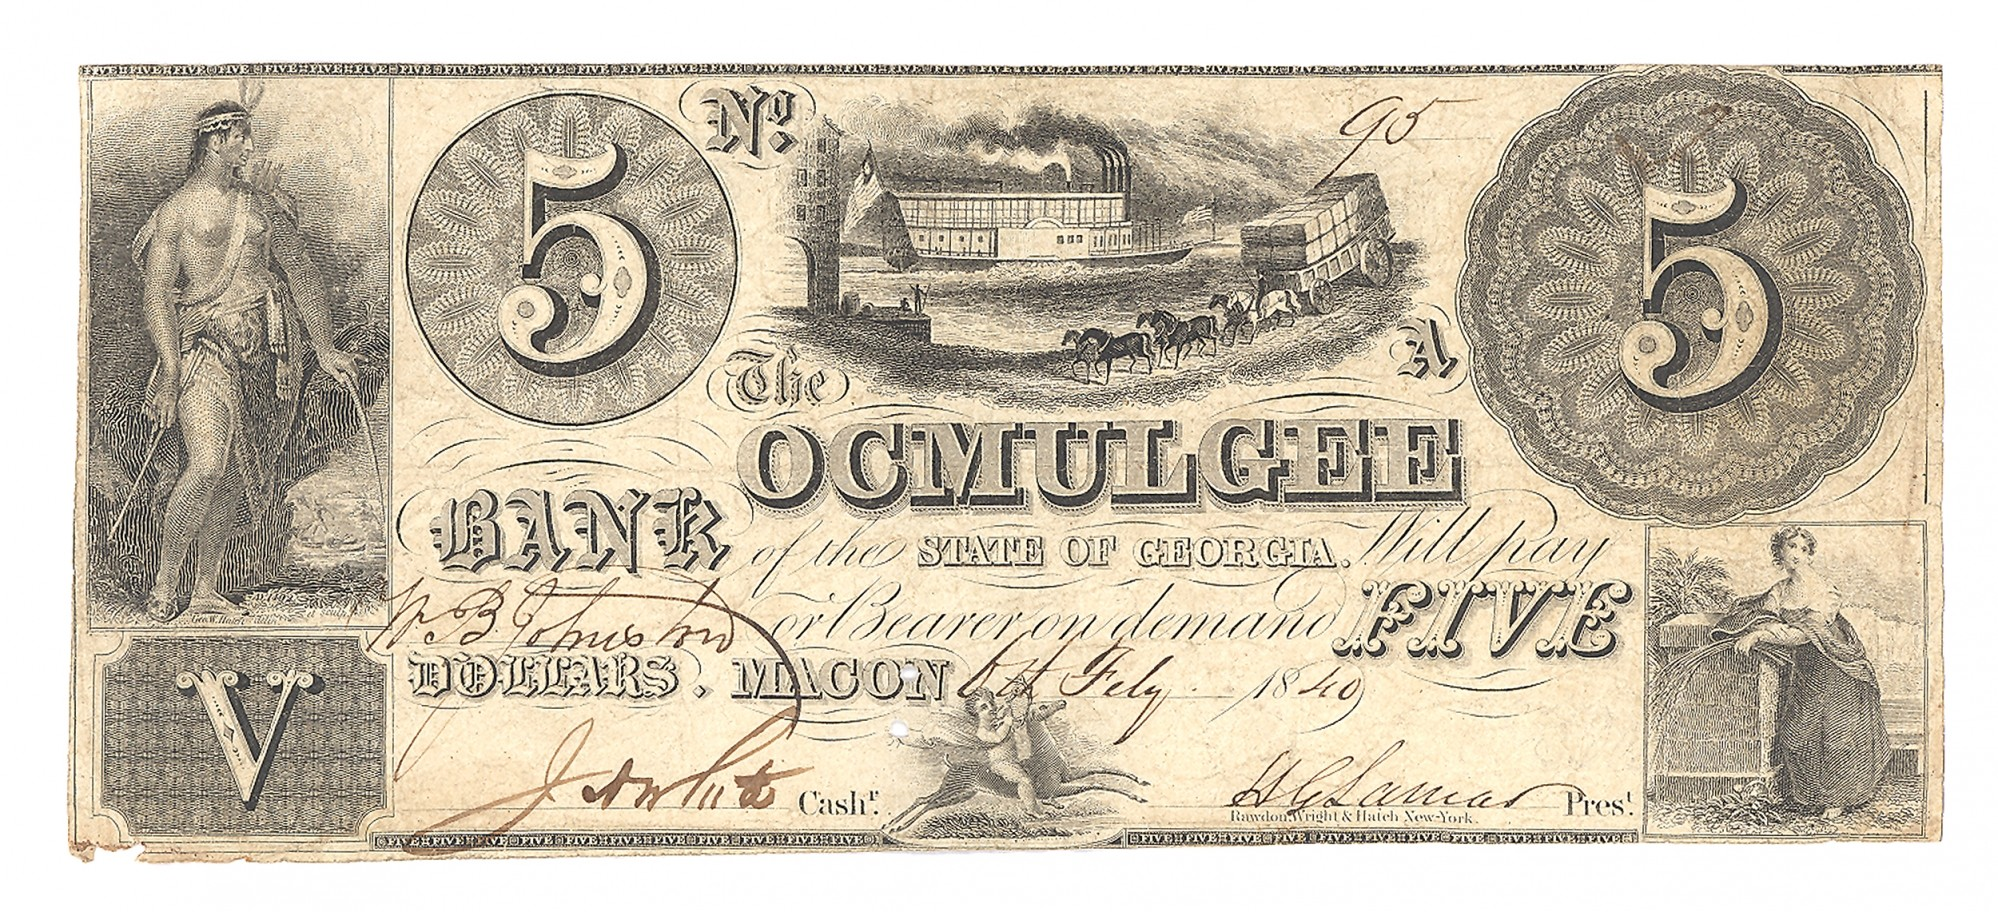 OCMULGEE BANK, GEORGIA, $5 NOTE